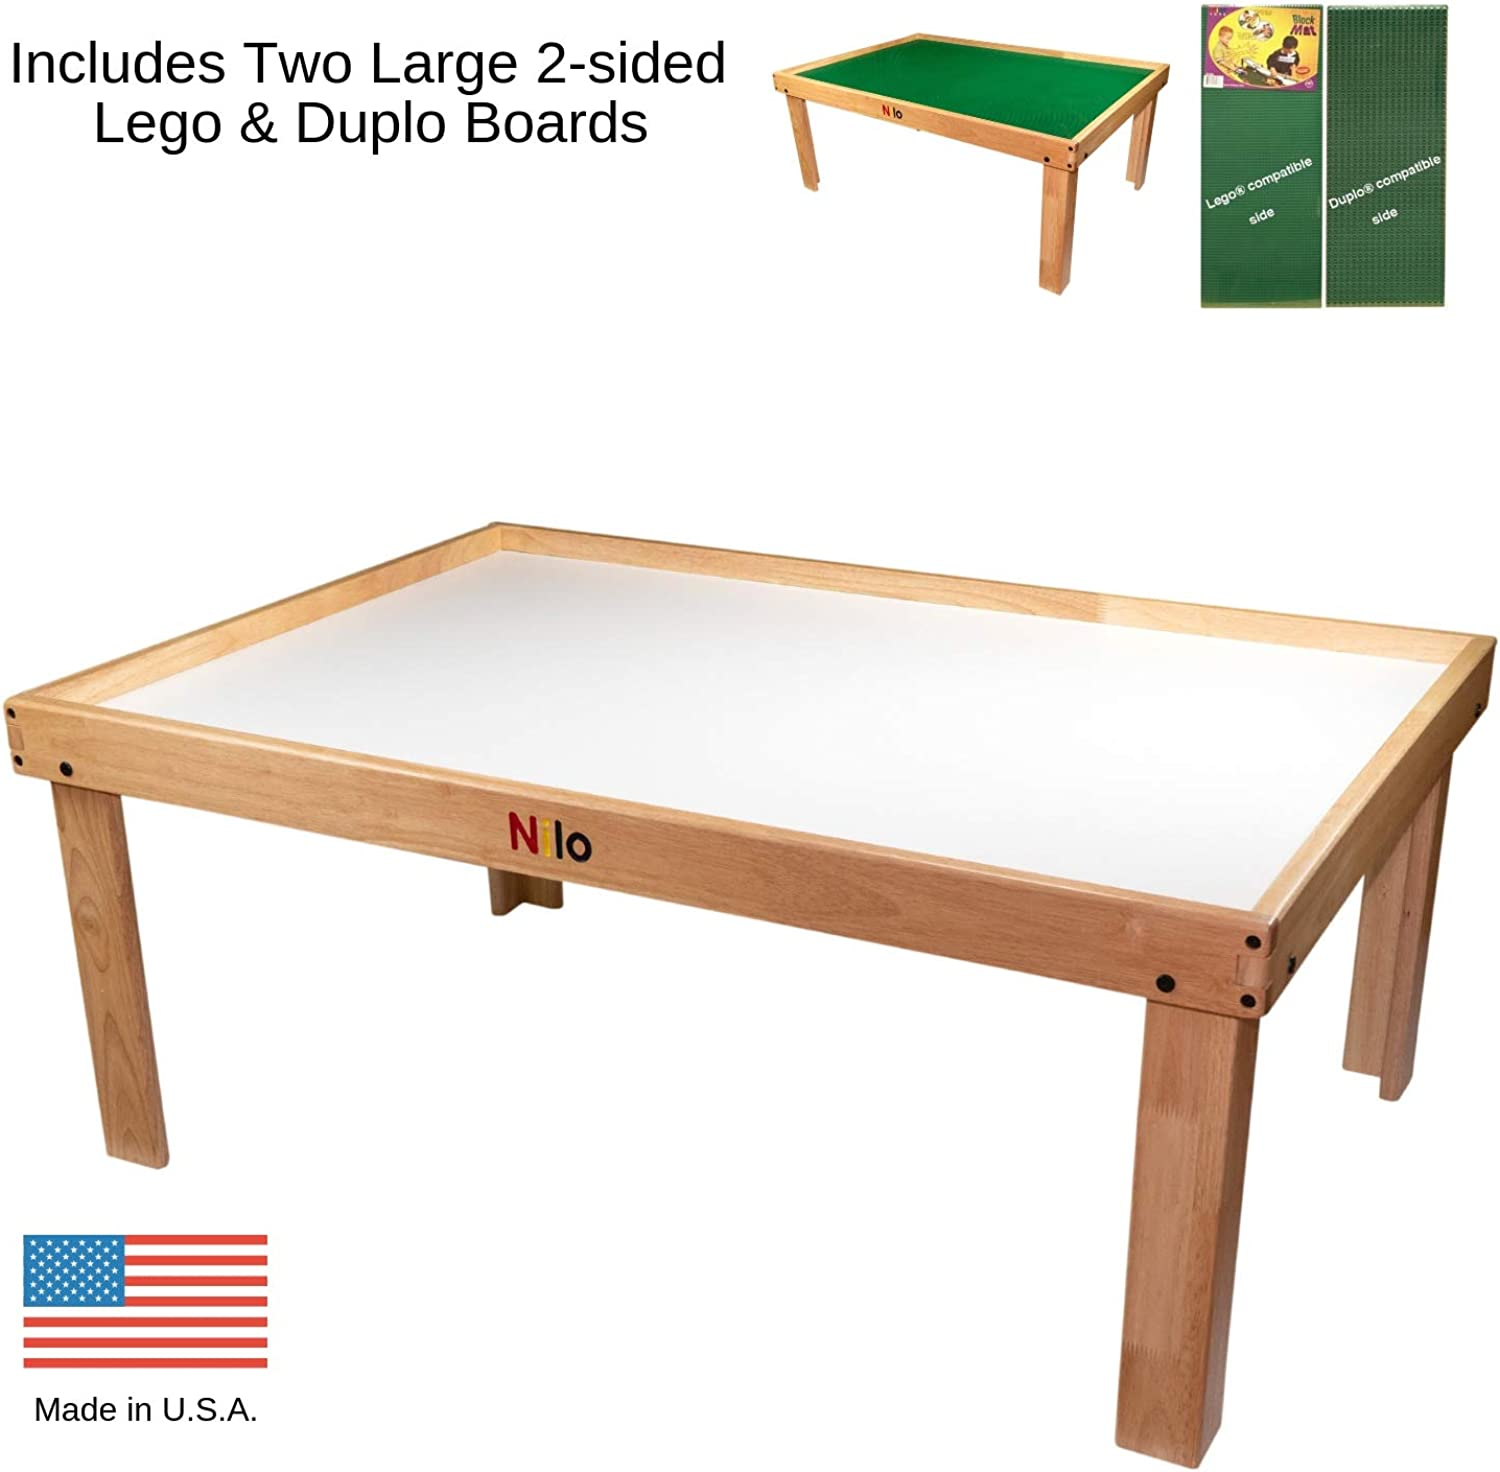 NILO Lego Table with Detachable Two 2Sided Lego & Duplo Baseplates Boards Mats (N34 Activity Table w Holes, 24x32x20 and 2X Green Base Plates 12x32)